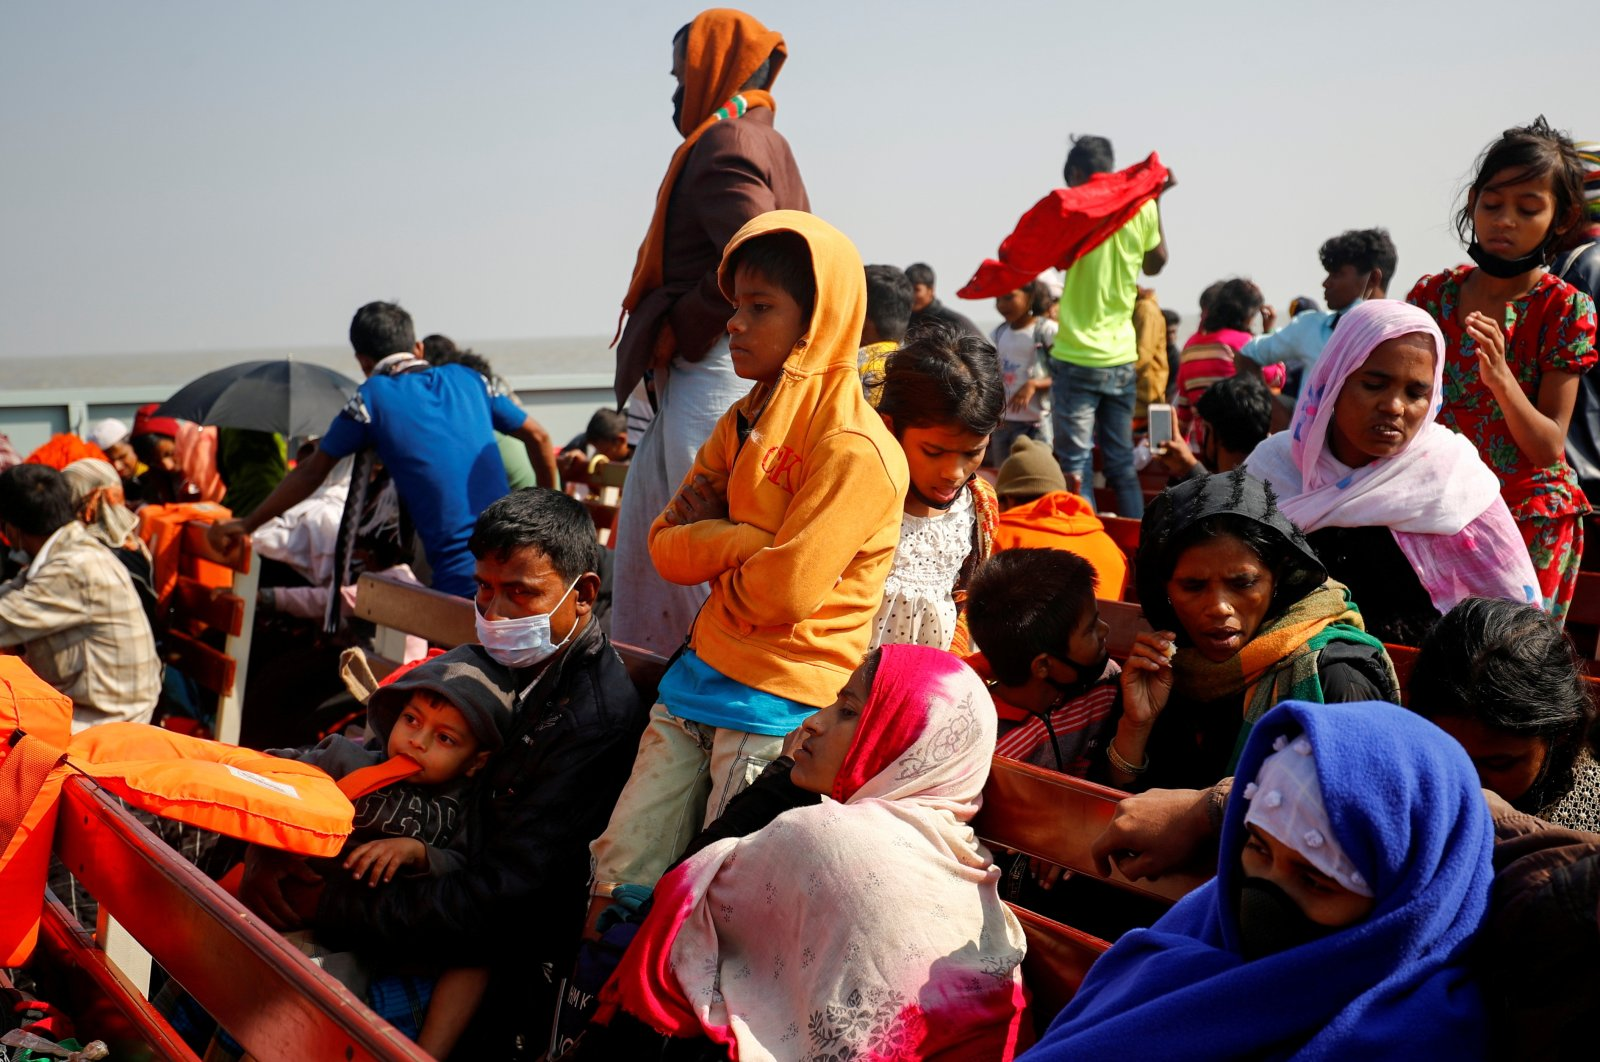 Rohingya refugees sit on wooden benches of a navy vessel on their way to the Bhasan Char island in Noakhali district, Bangladesh, Dec. 29, 2020. (Reuters/Mohammad Ponir Hossain/File Photo/File Photo)